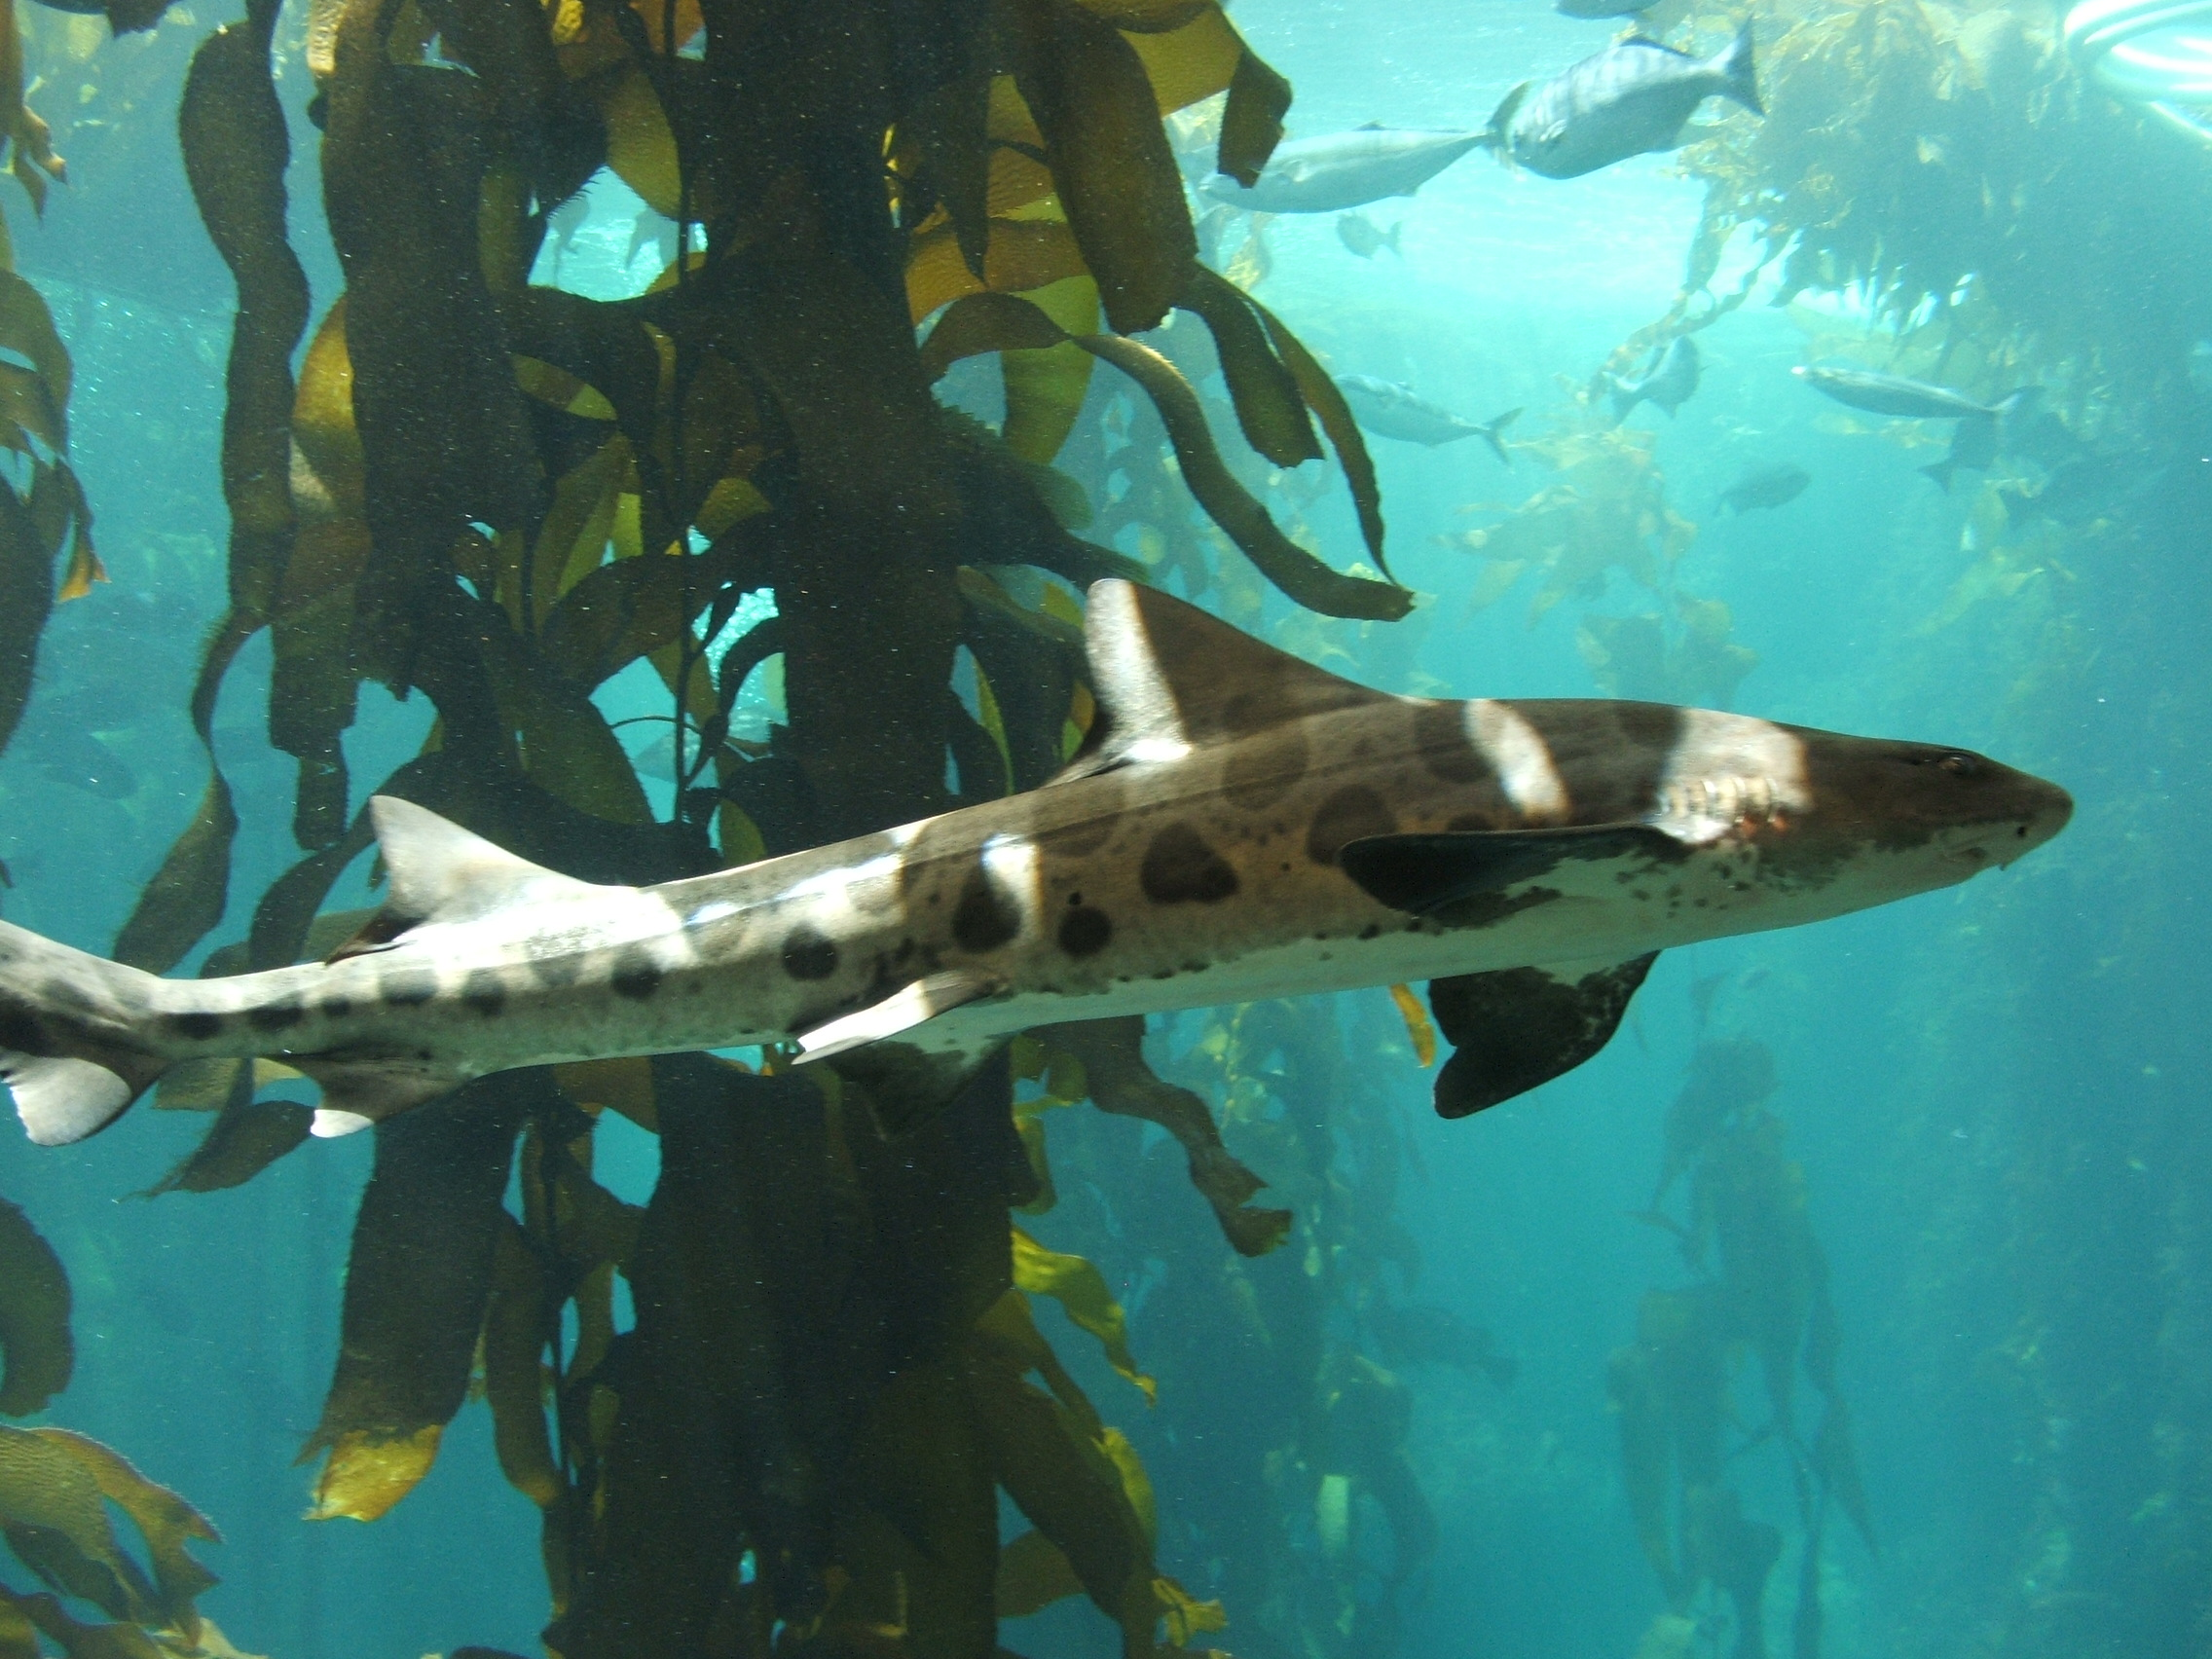 http://upload.wikimedia.org/wikipedia/commons/0/07/Leopard_shark_(Triakis_semifasciata)_01.jpg